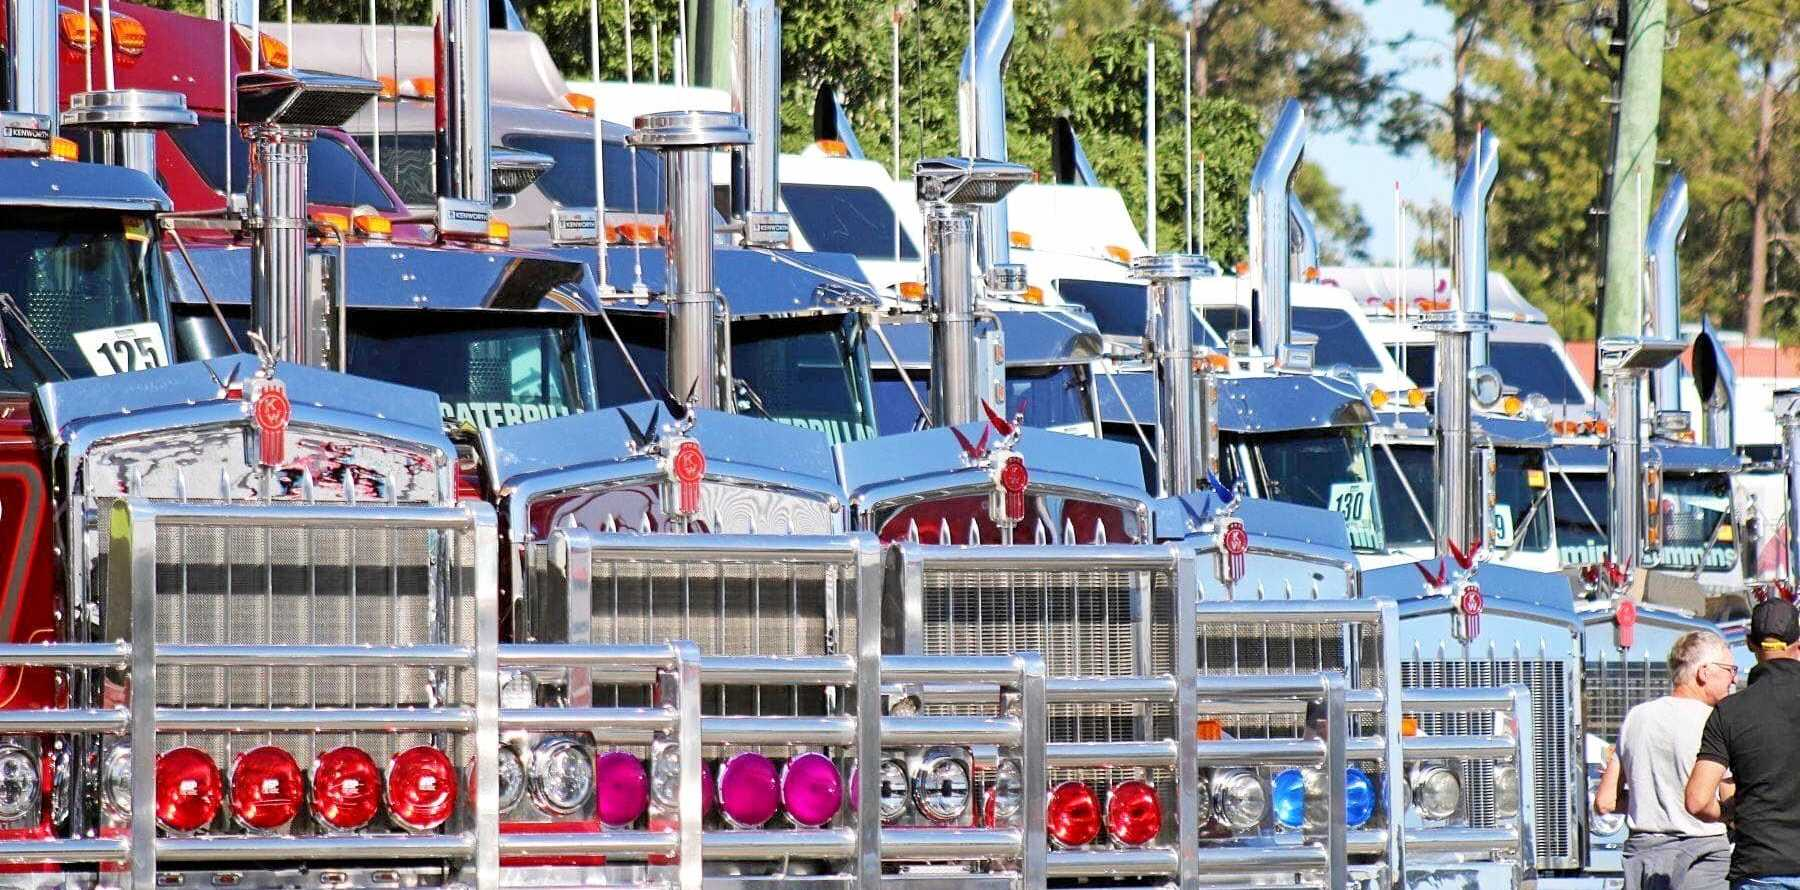 GREAT TRUCK SHOW: Hundreds head to Casino for the annual truck show every year.